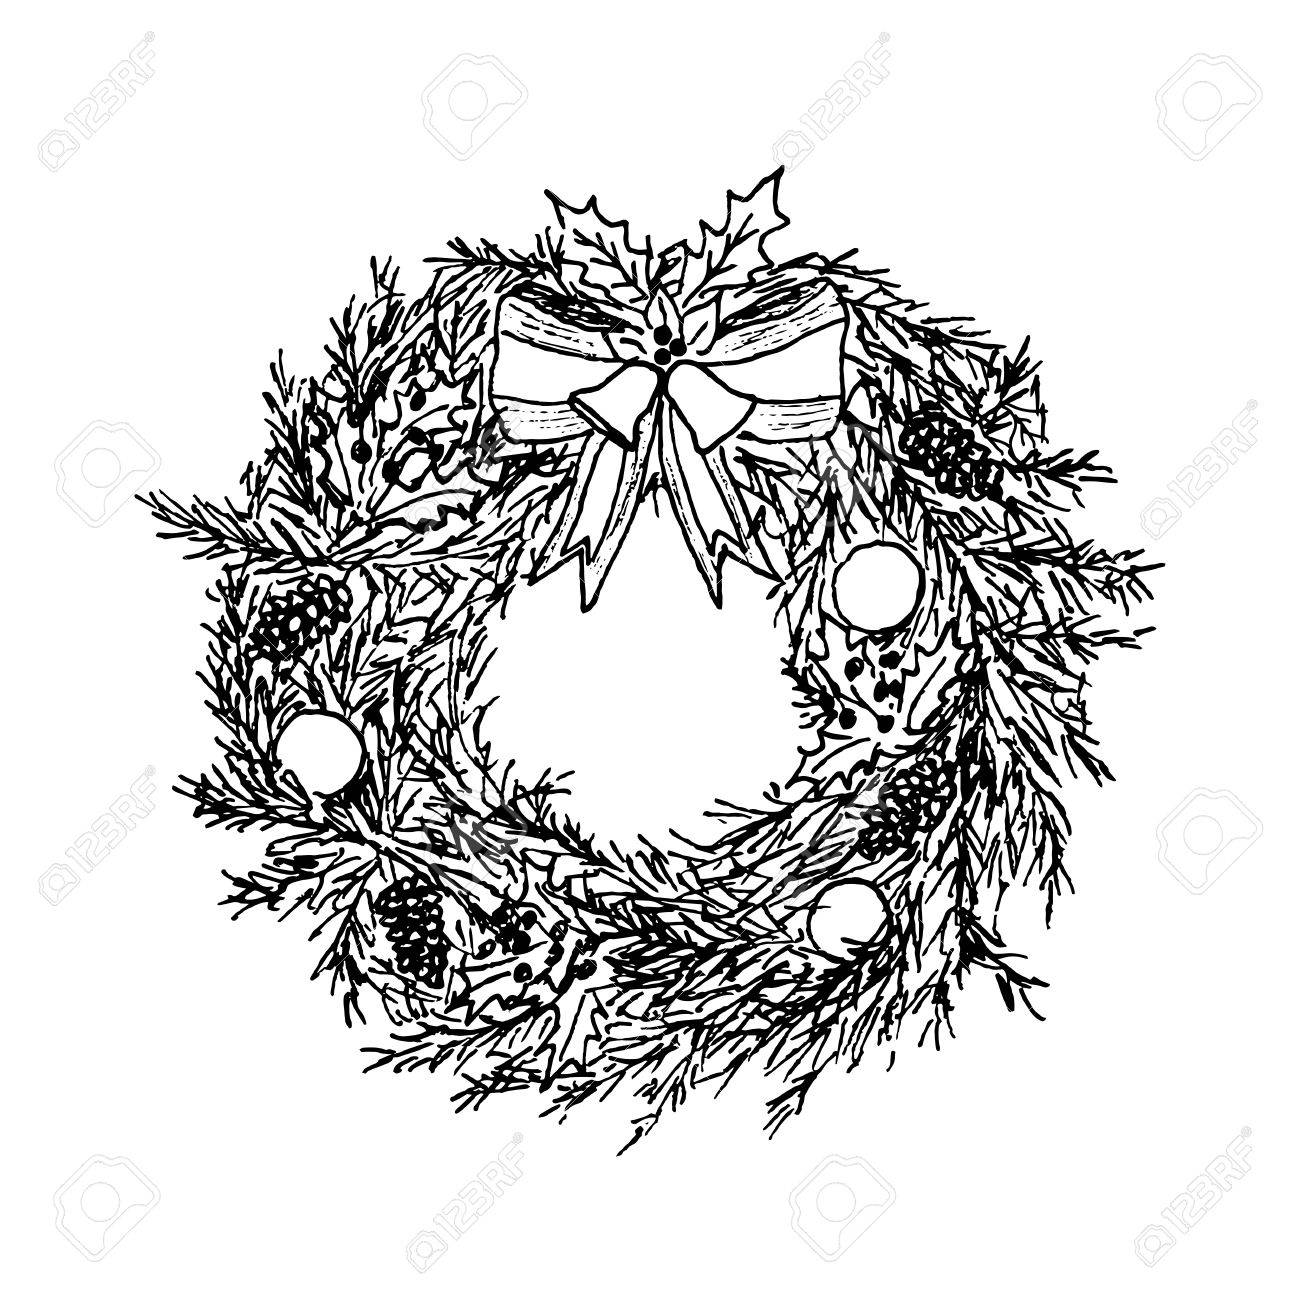 Drawings Of Christmas Wreaths.Hand Drawn Christmas Wreath Sketch Vector Illustration